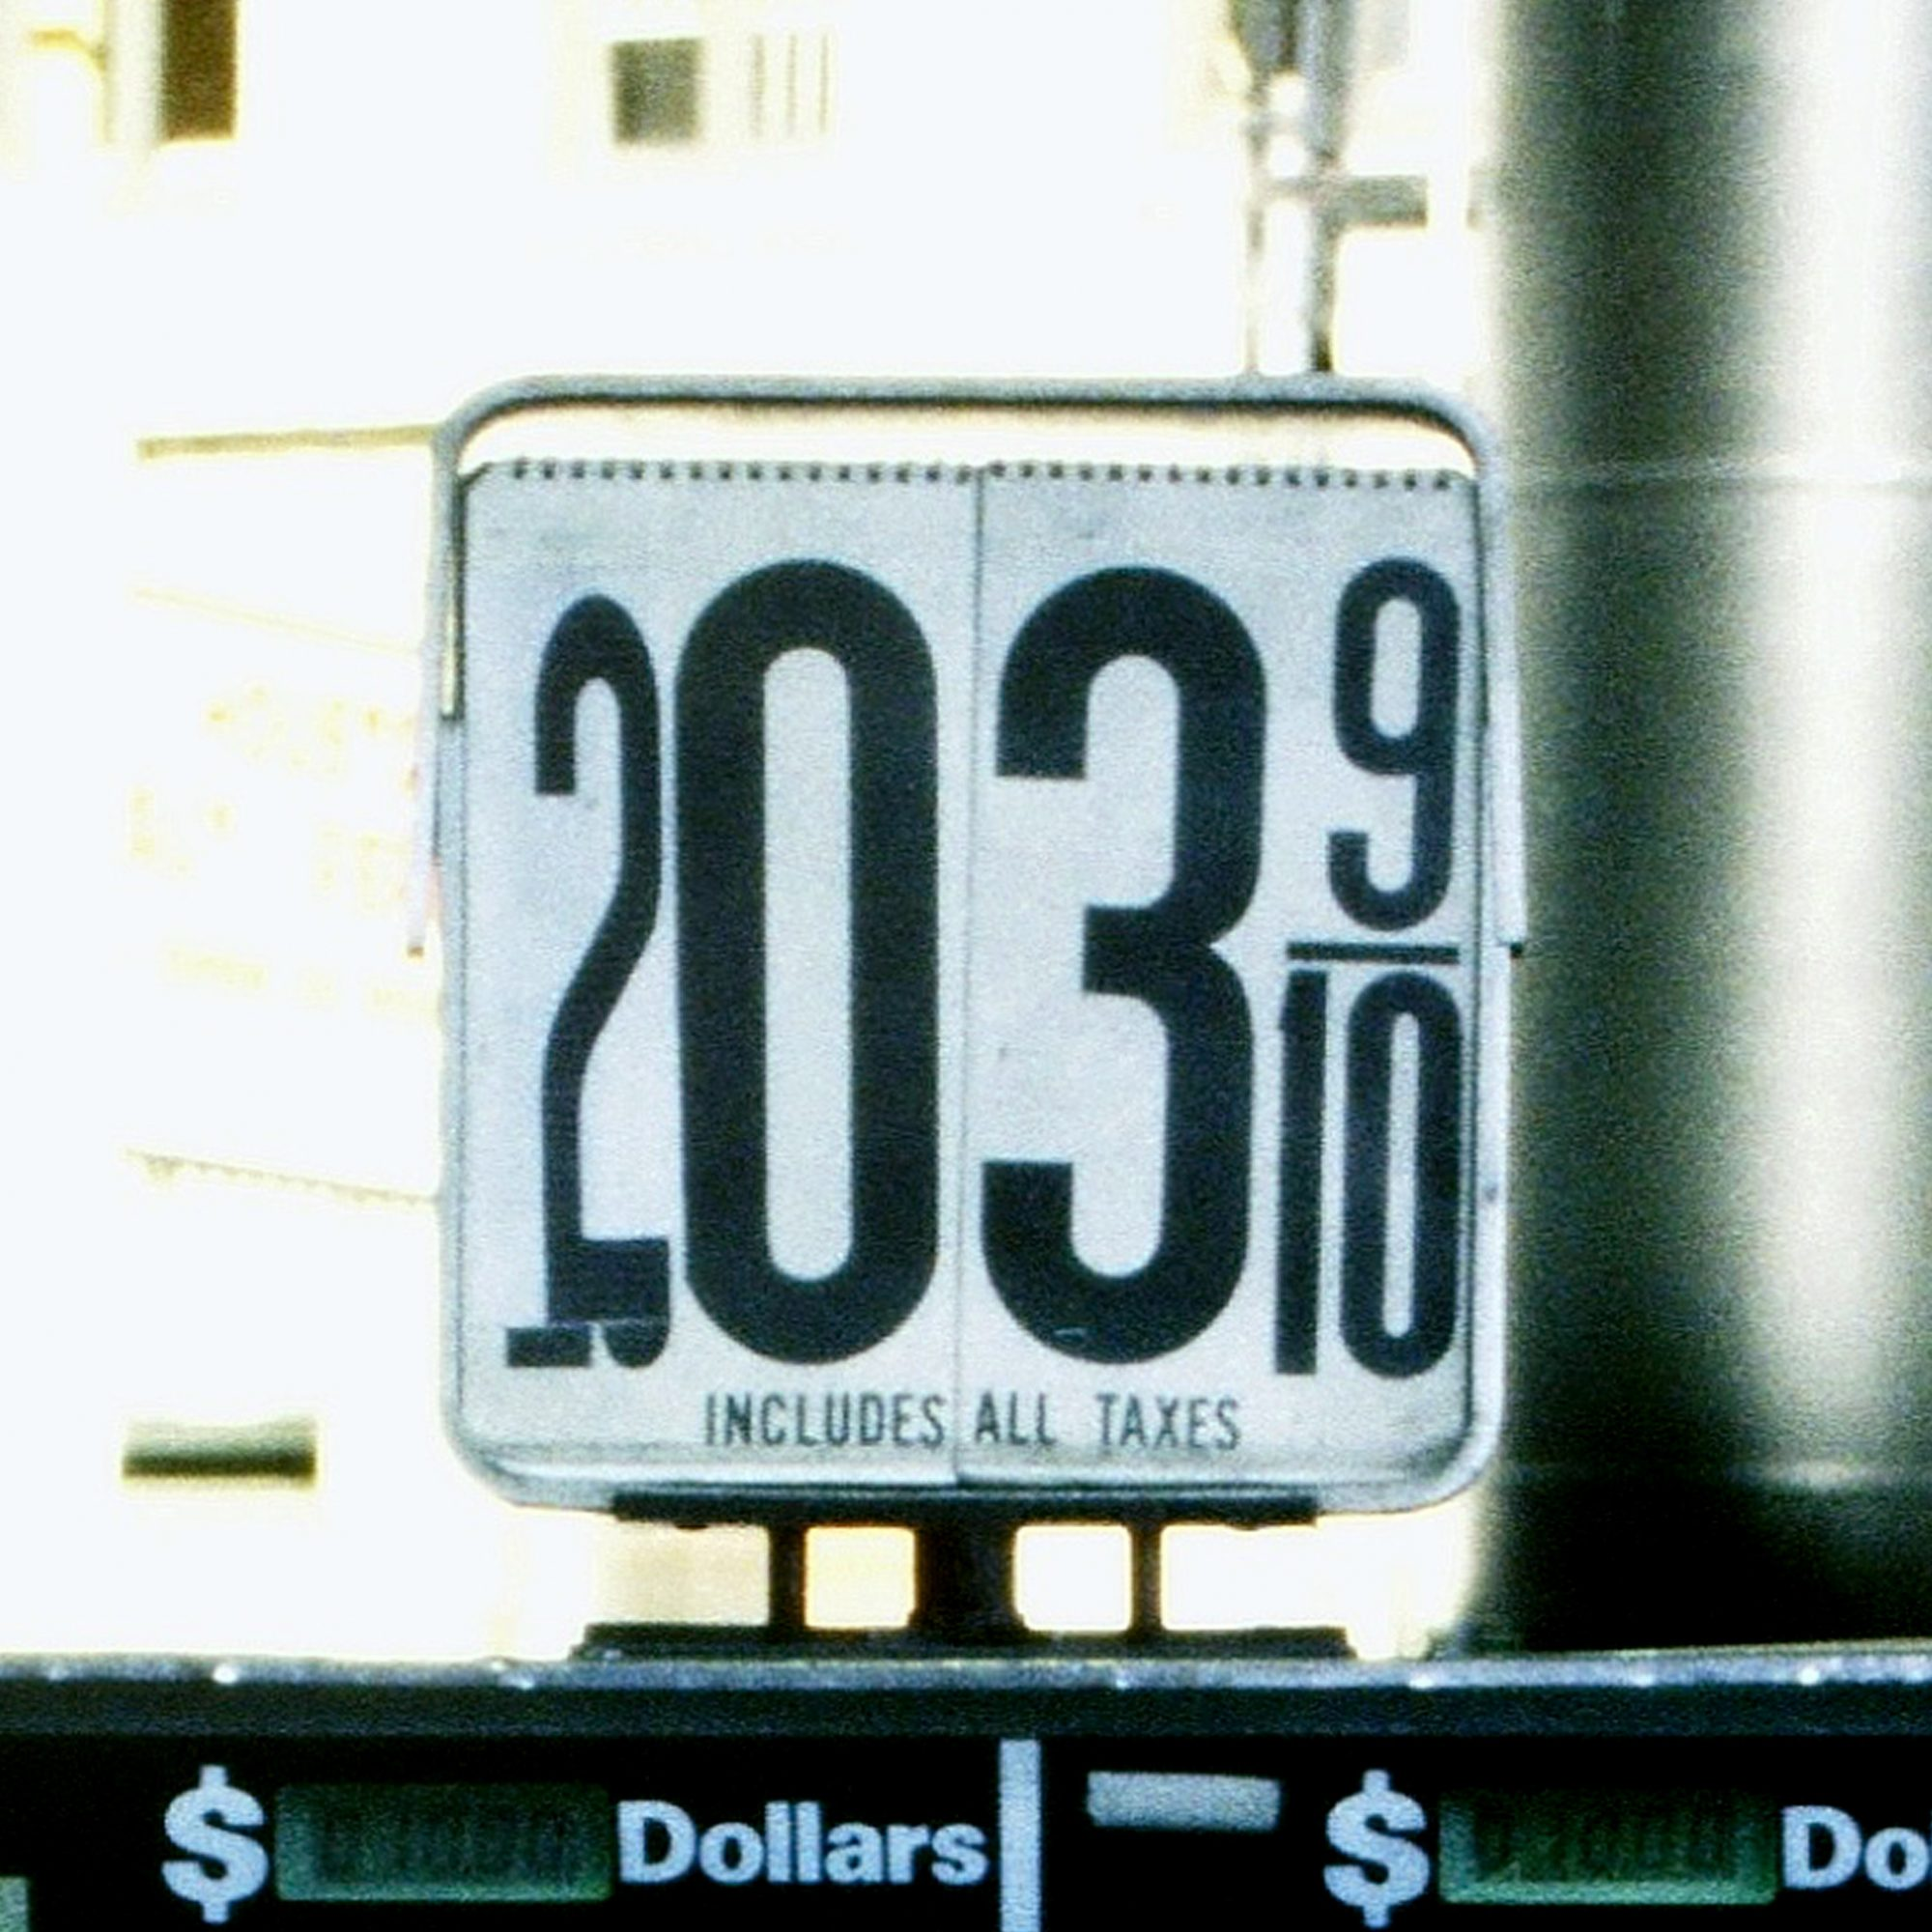 Gas station sign with mismatched price numbers